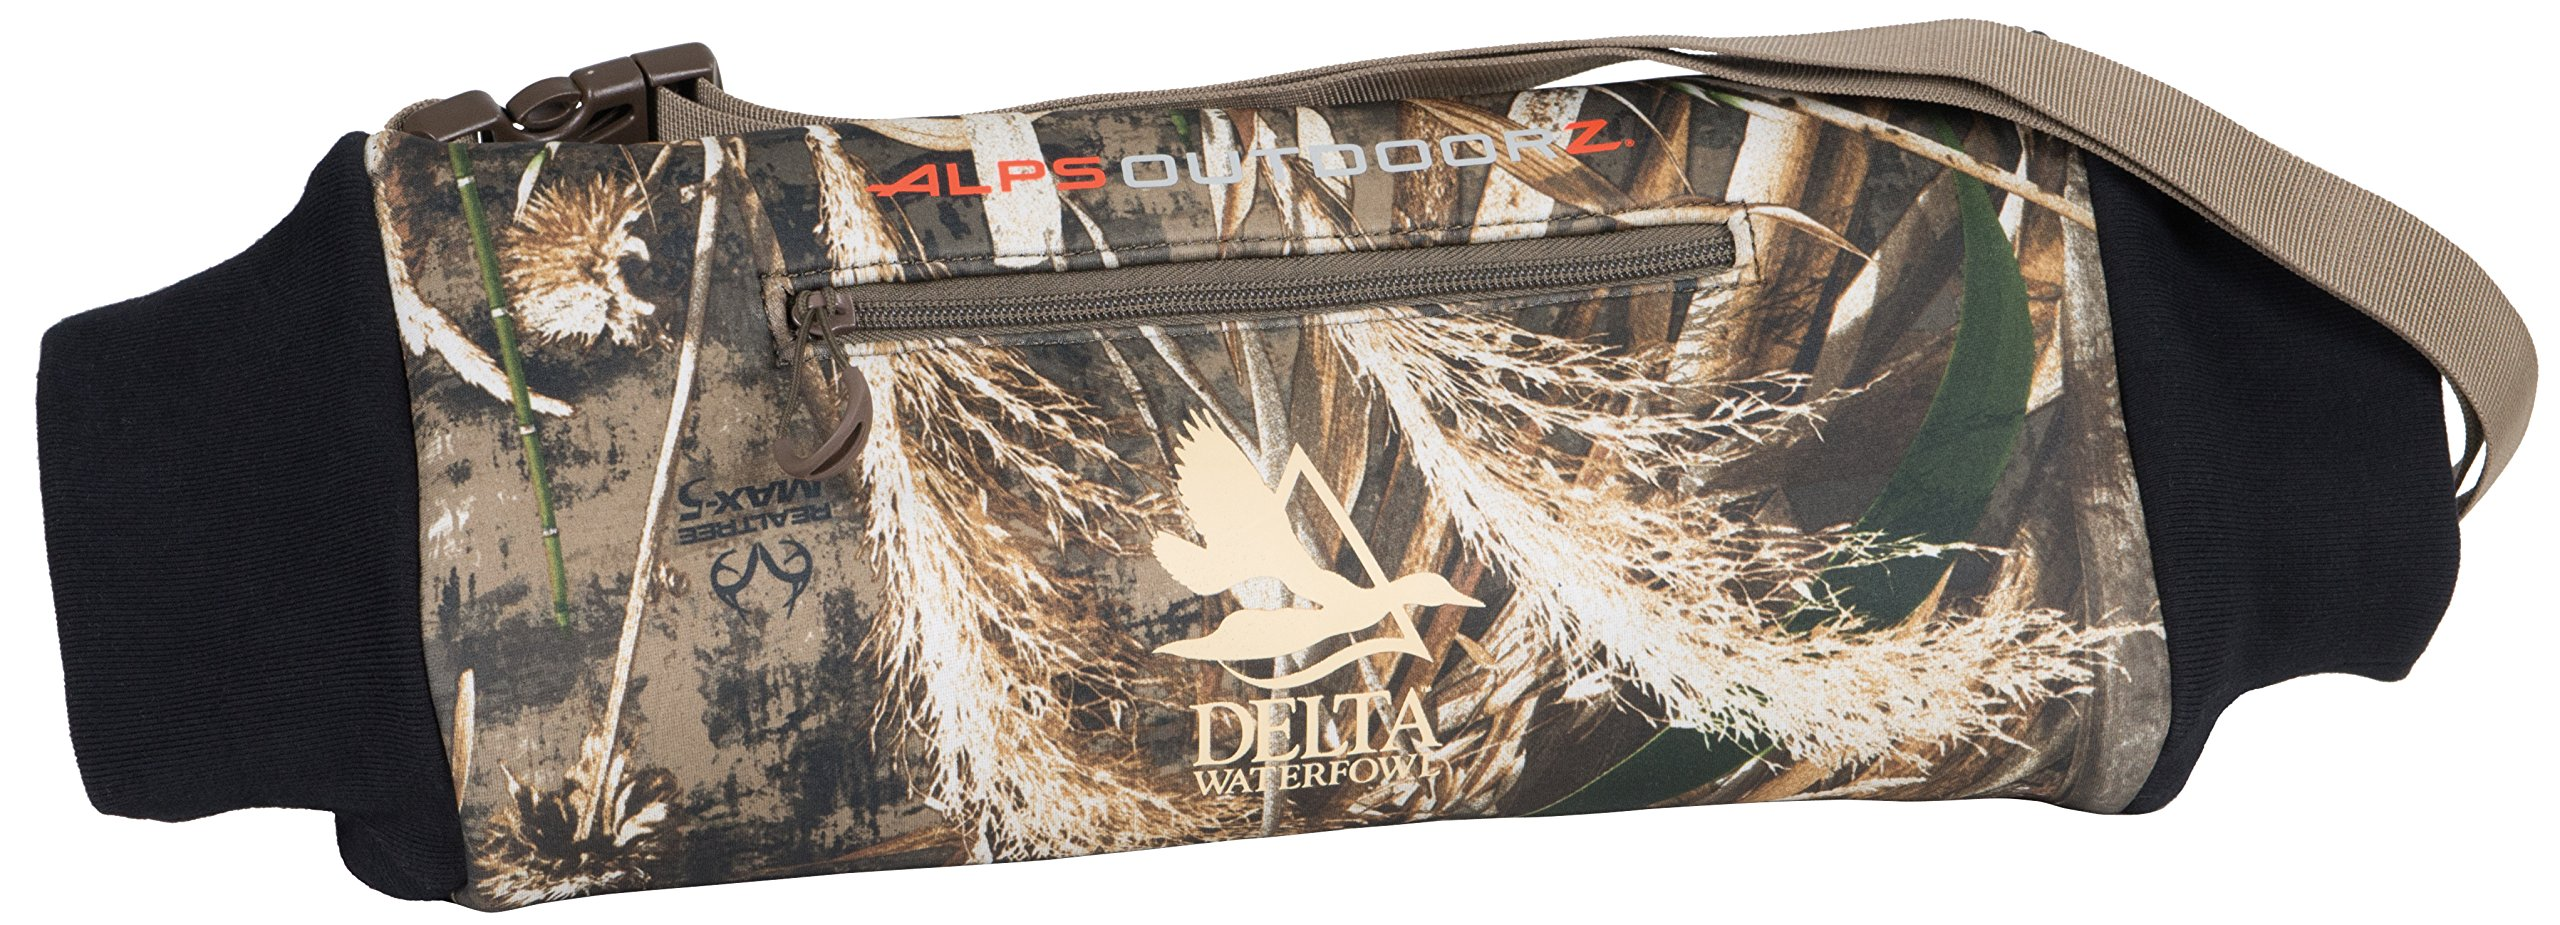 ALPS OutdoorZ Delta Waterfowl Hand Warmer